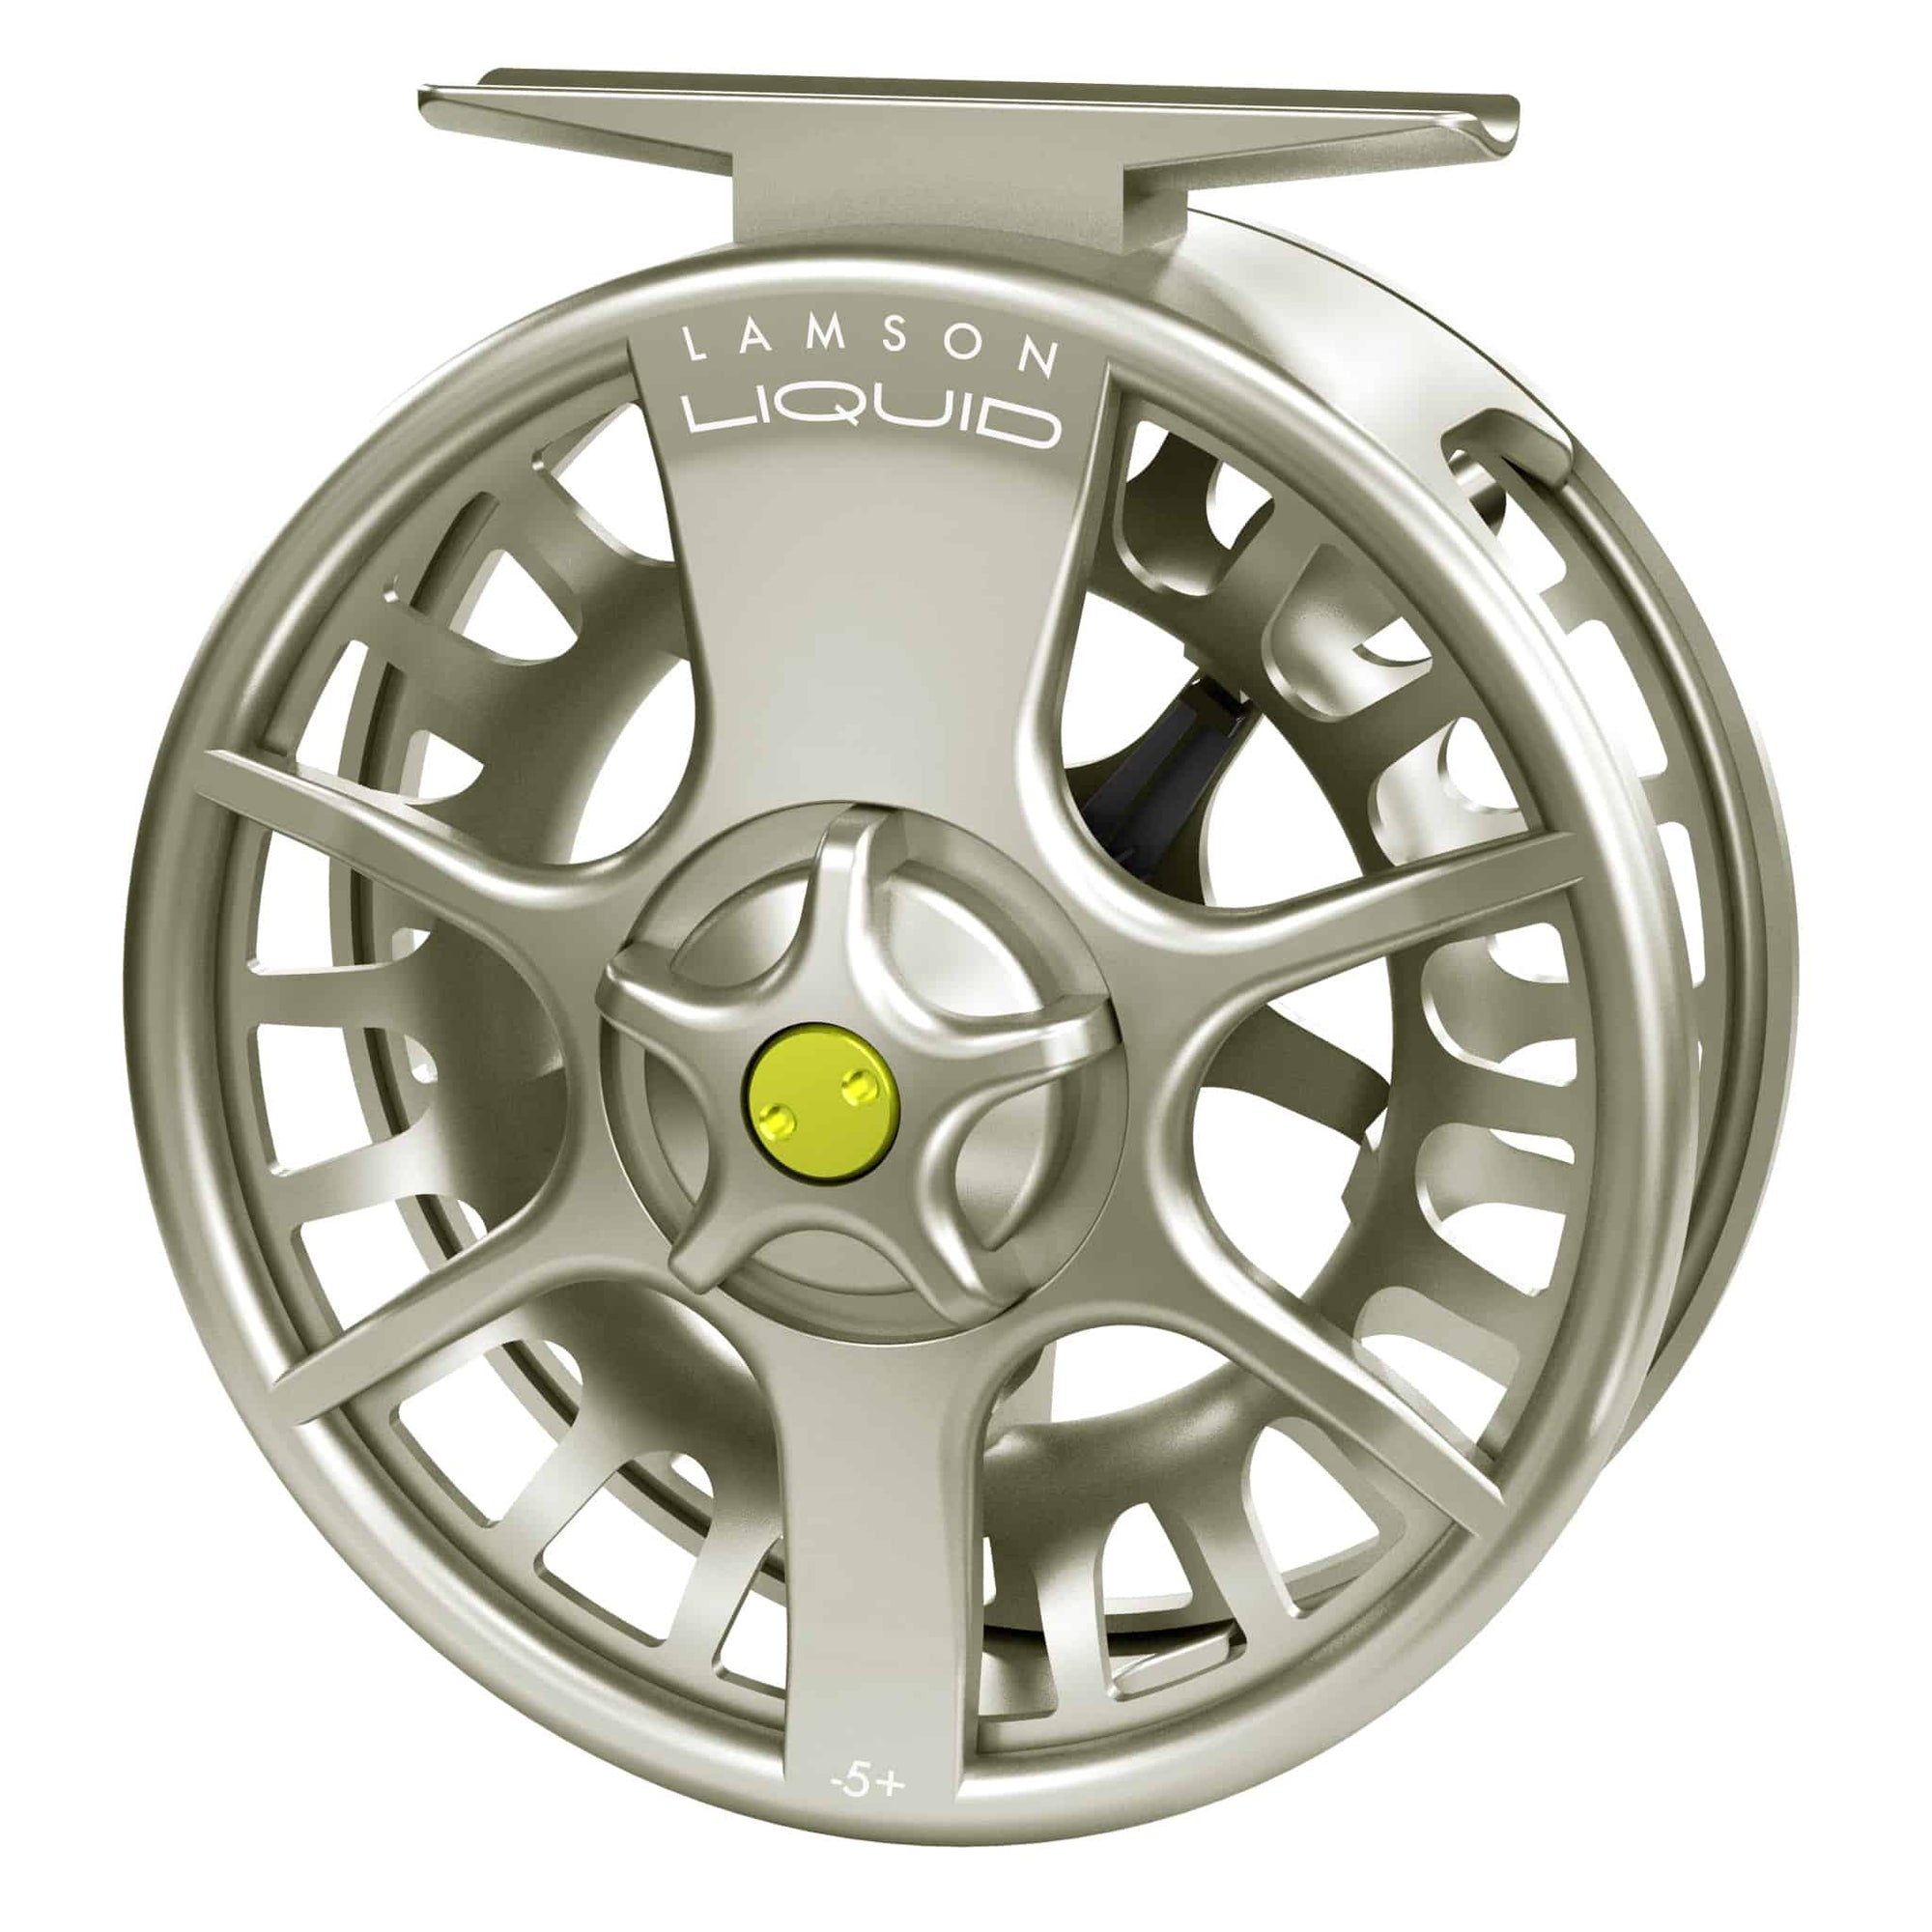 Waterworks Lamson Liquid Vapor 2020 Model